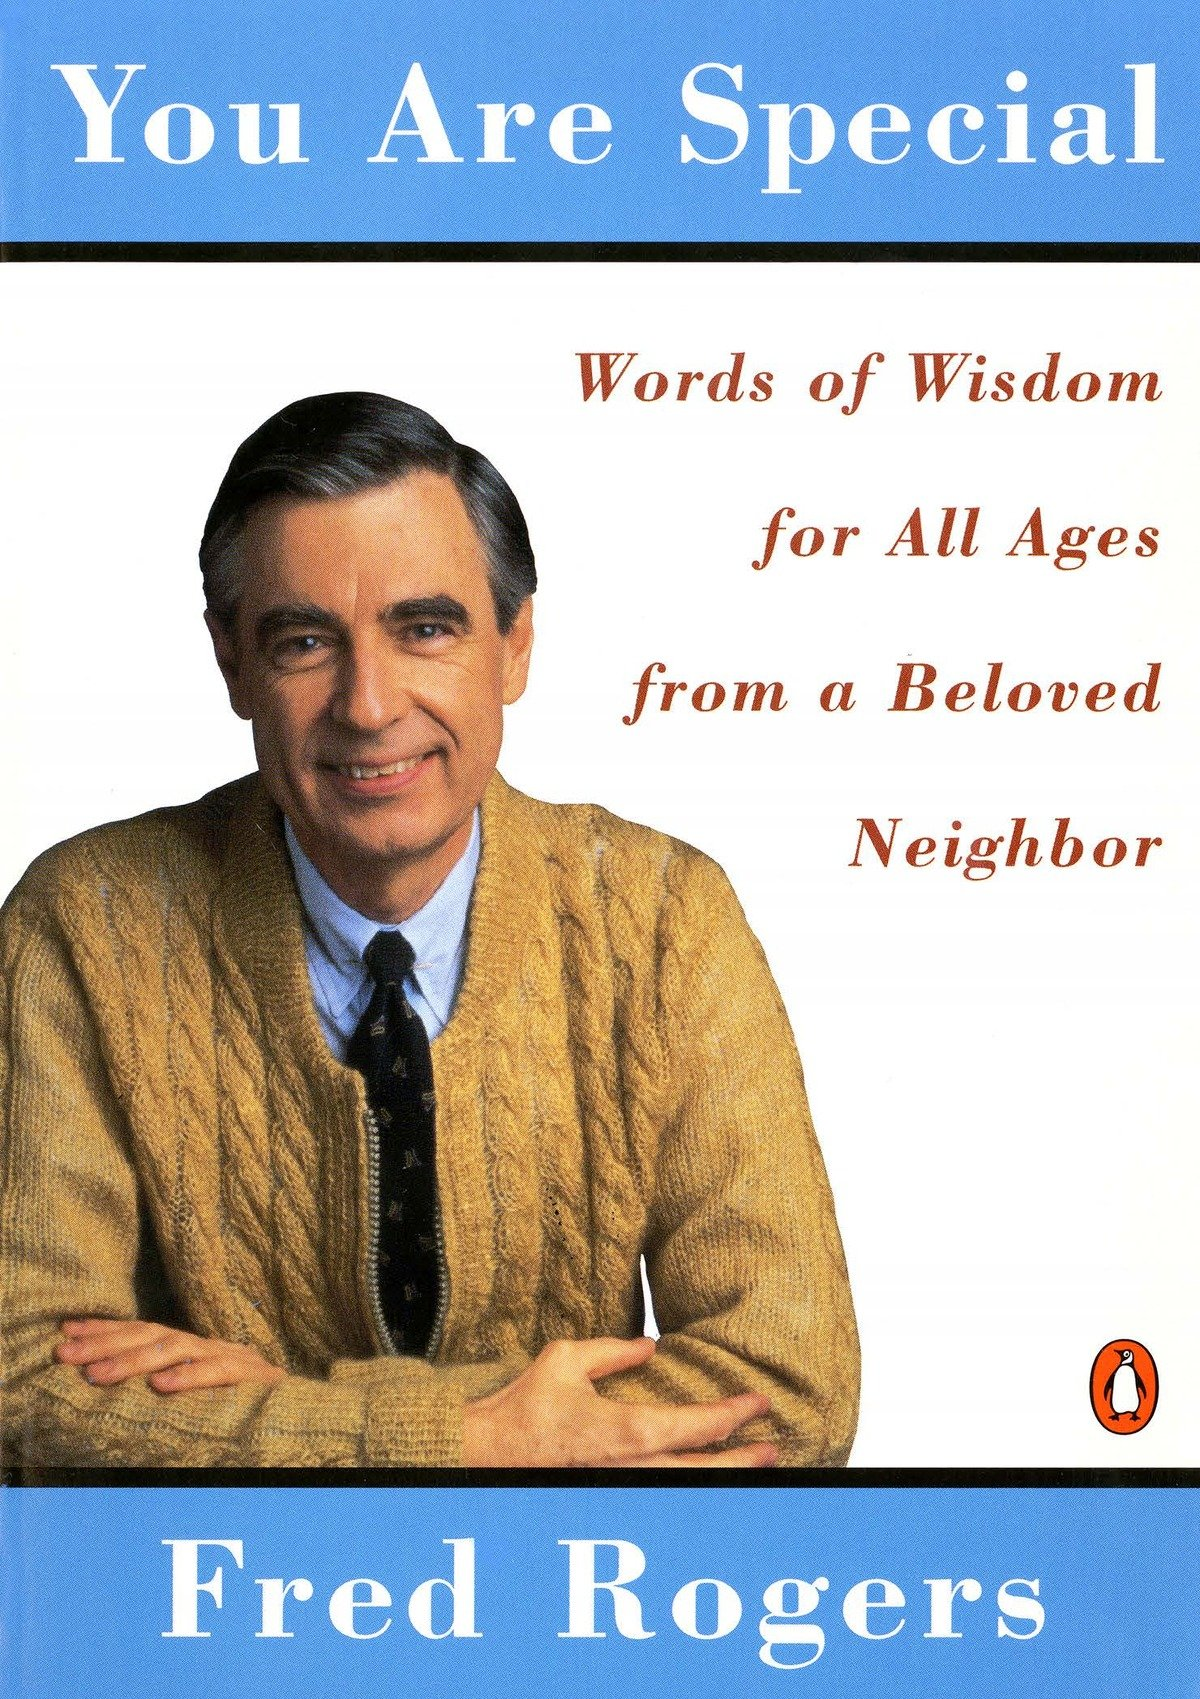 You are special : words of wisdom for all ages from a beloved neighbor, Fred Rogers